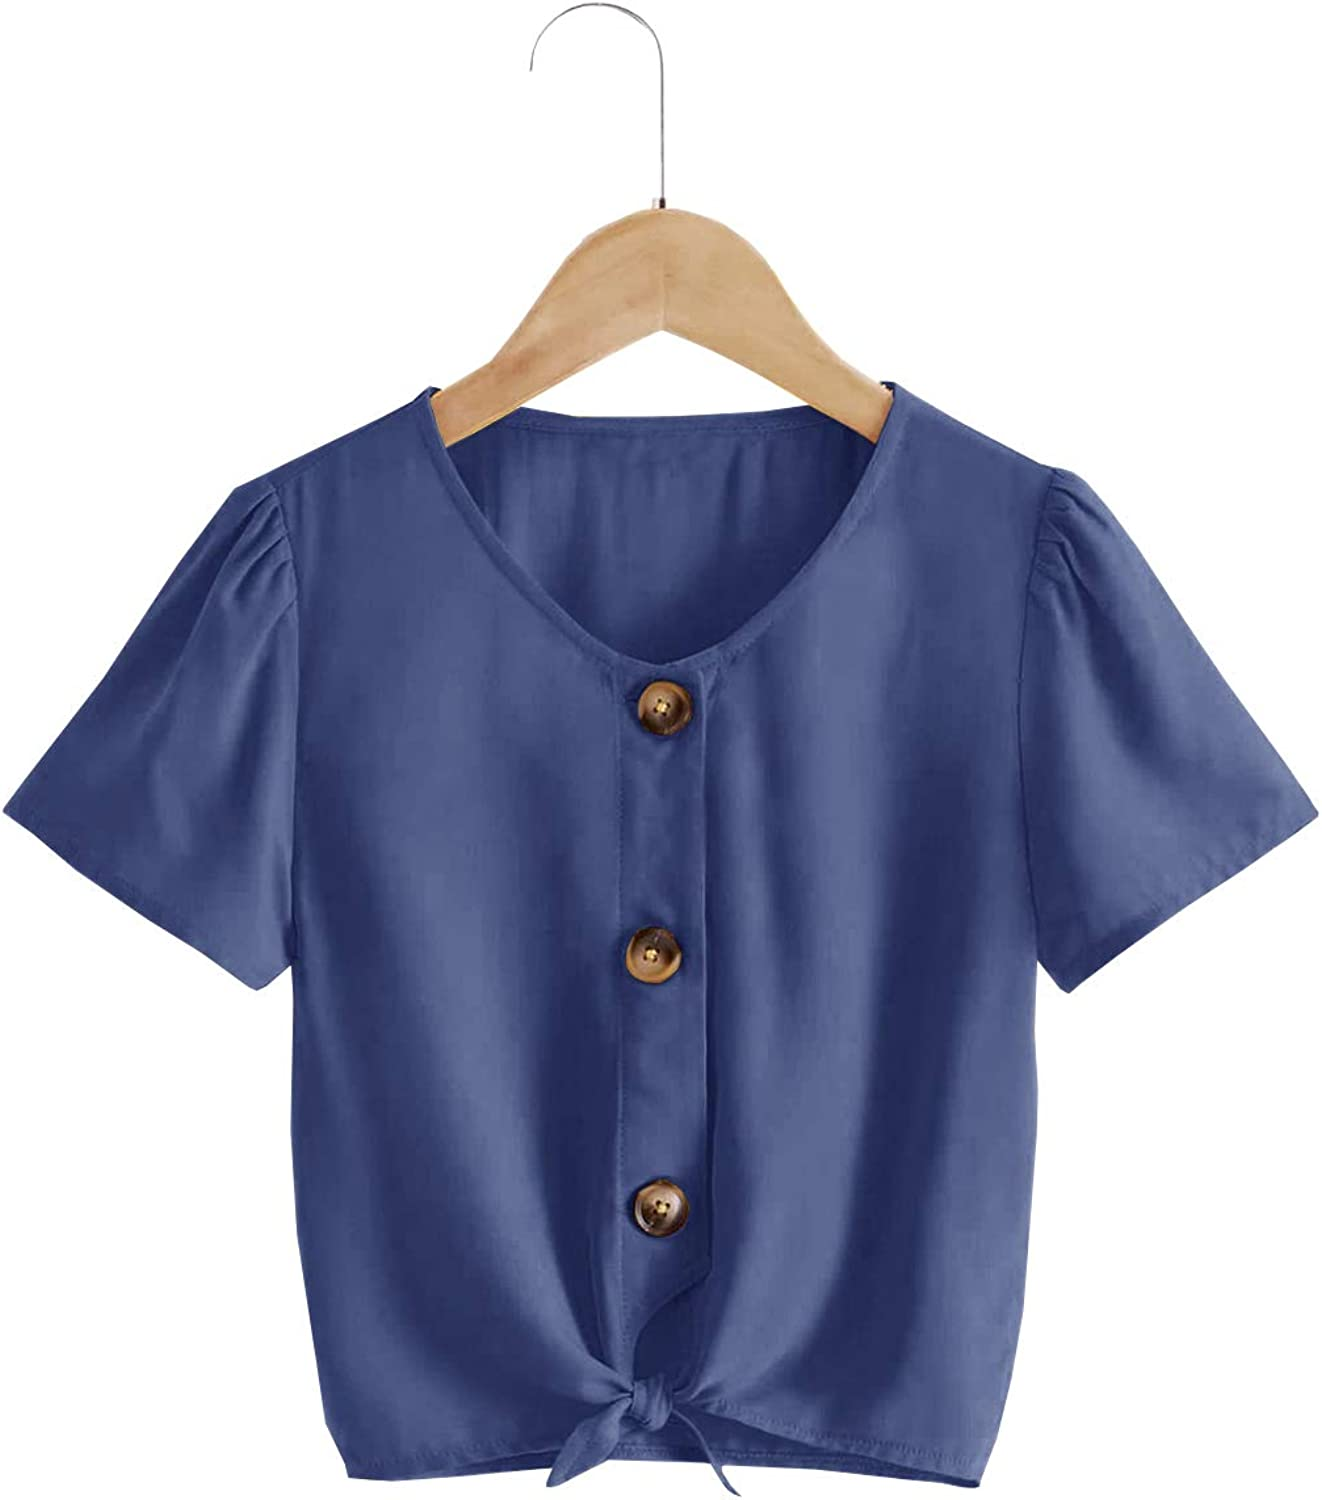 Meilidress Kids Girls Short Sleeve Tops V Neck Tie Knot Front Button Down Shirts Blouse